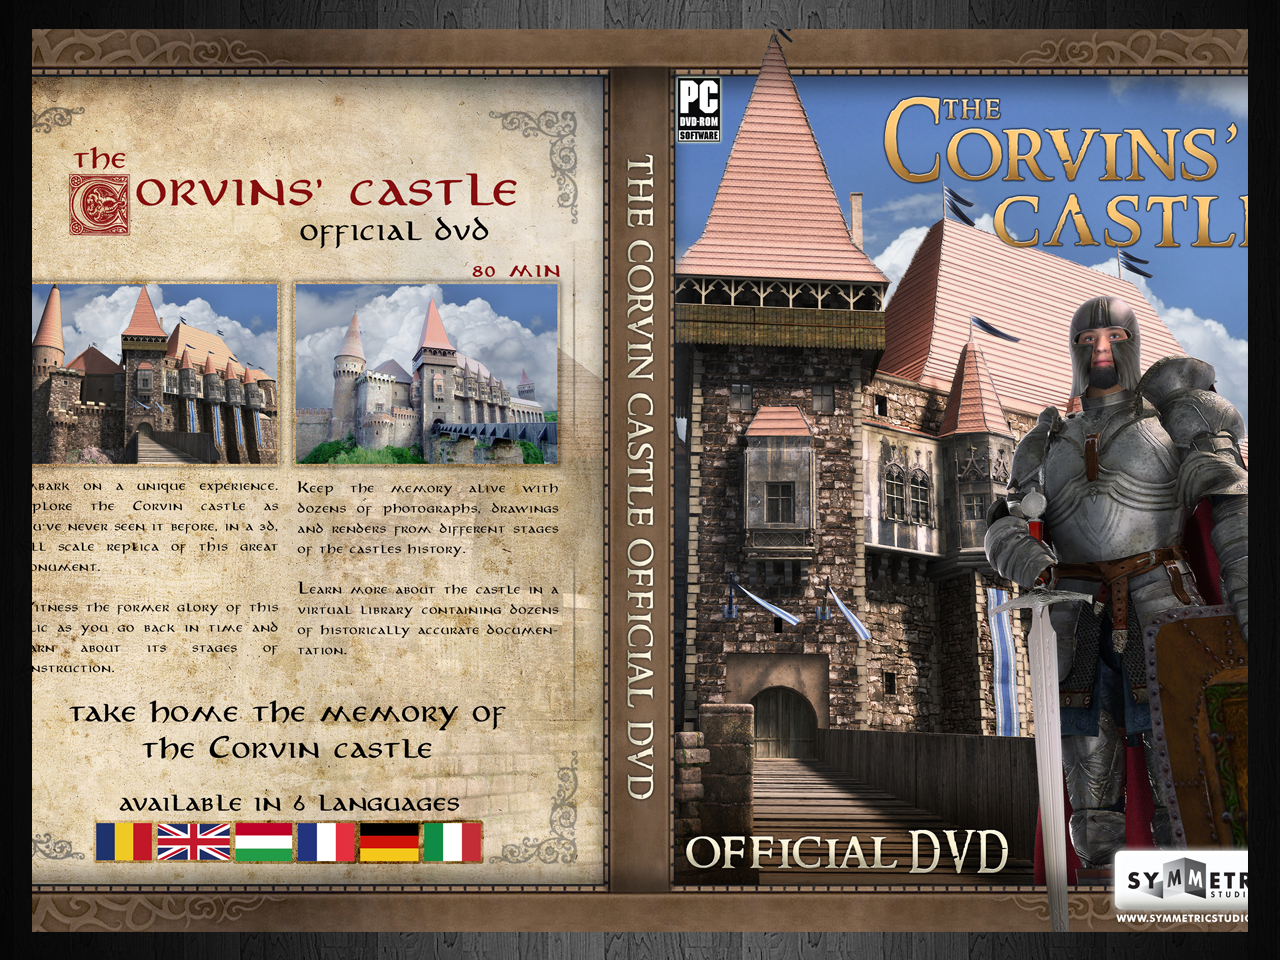 The Corvin Castle DvD